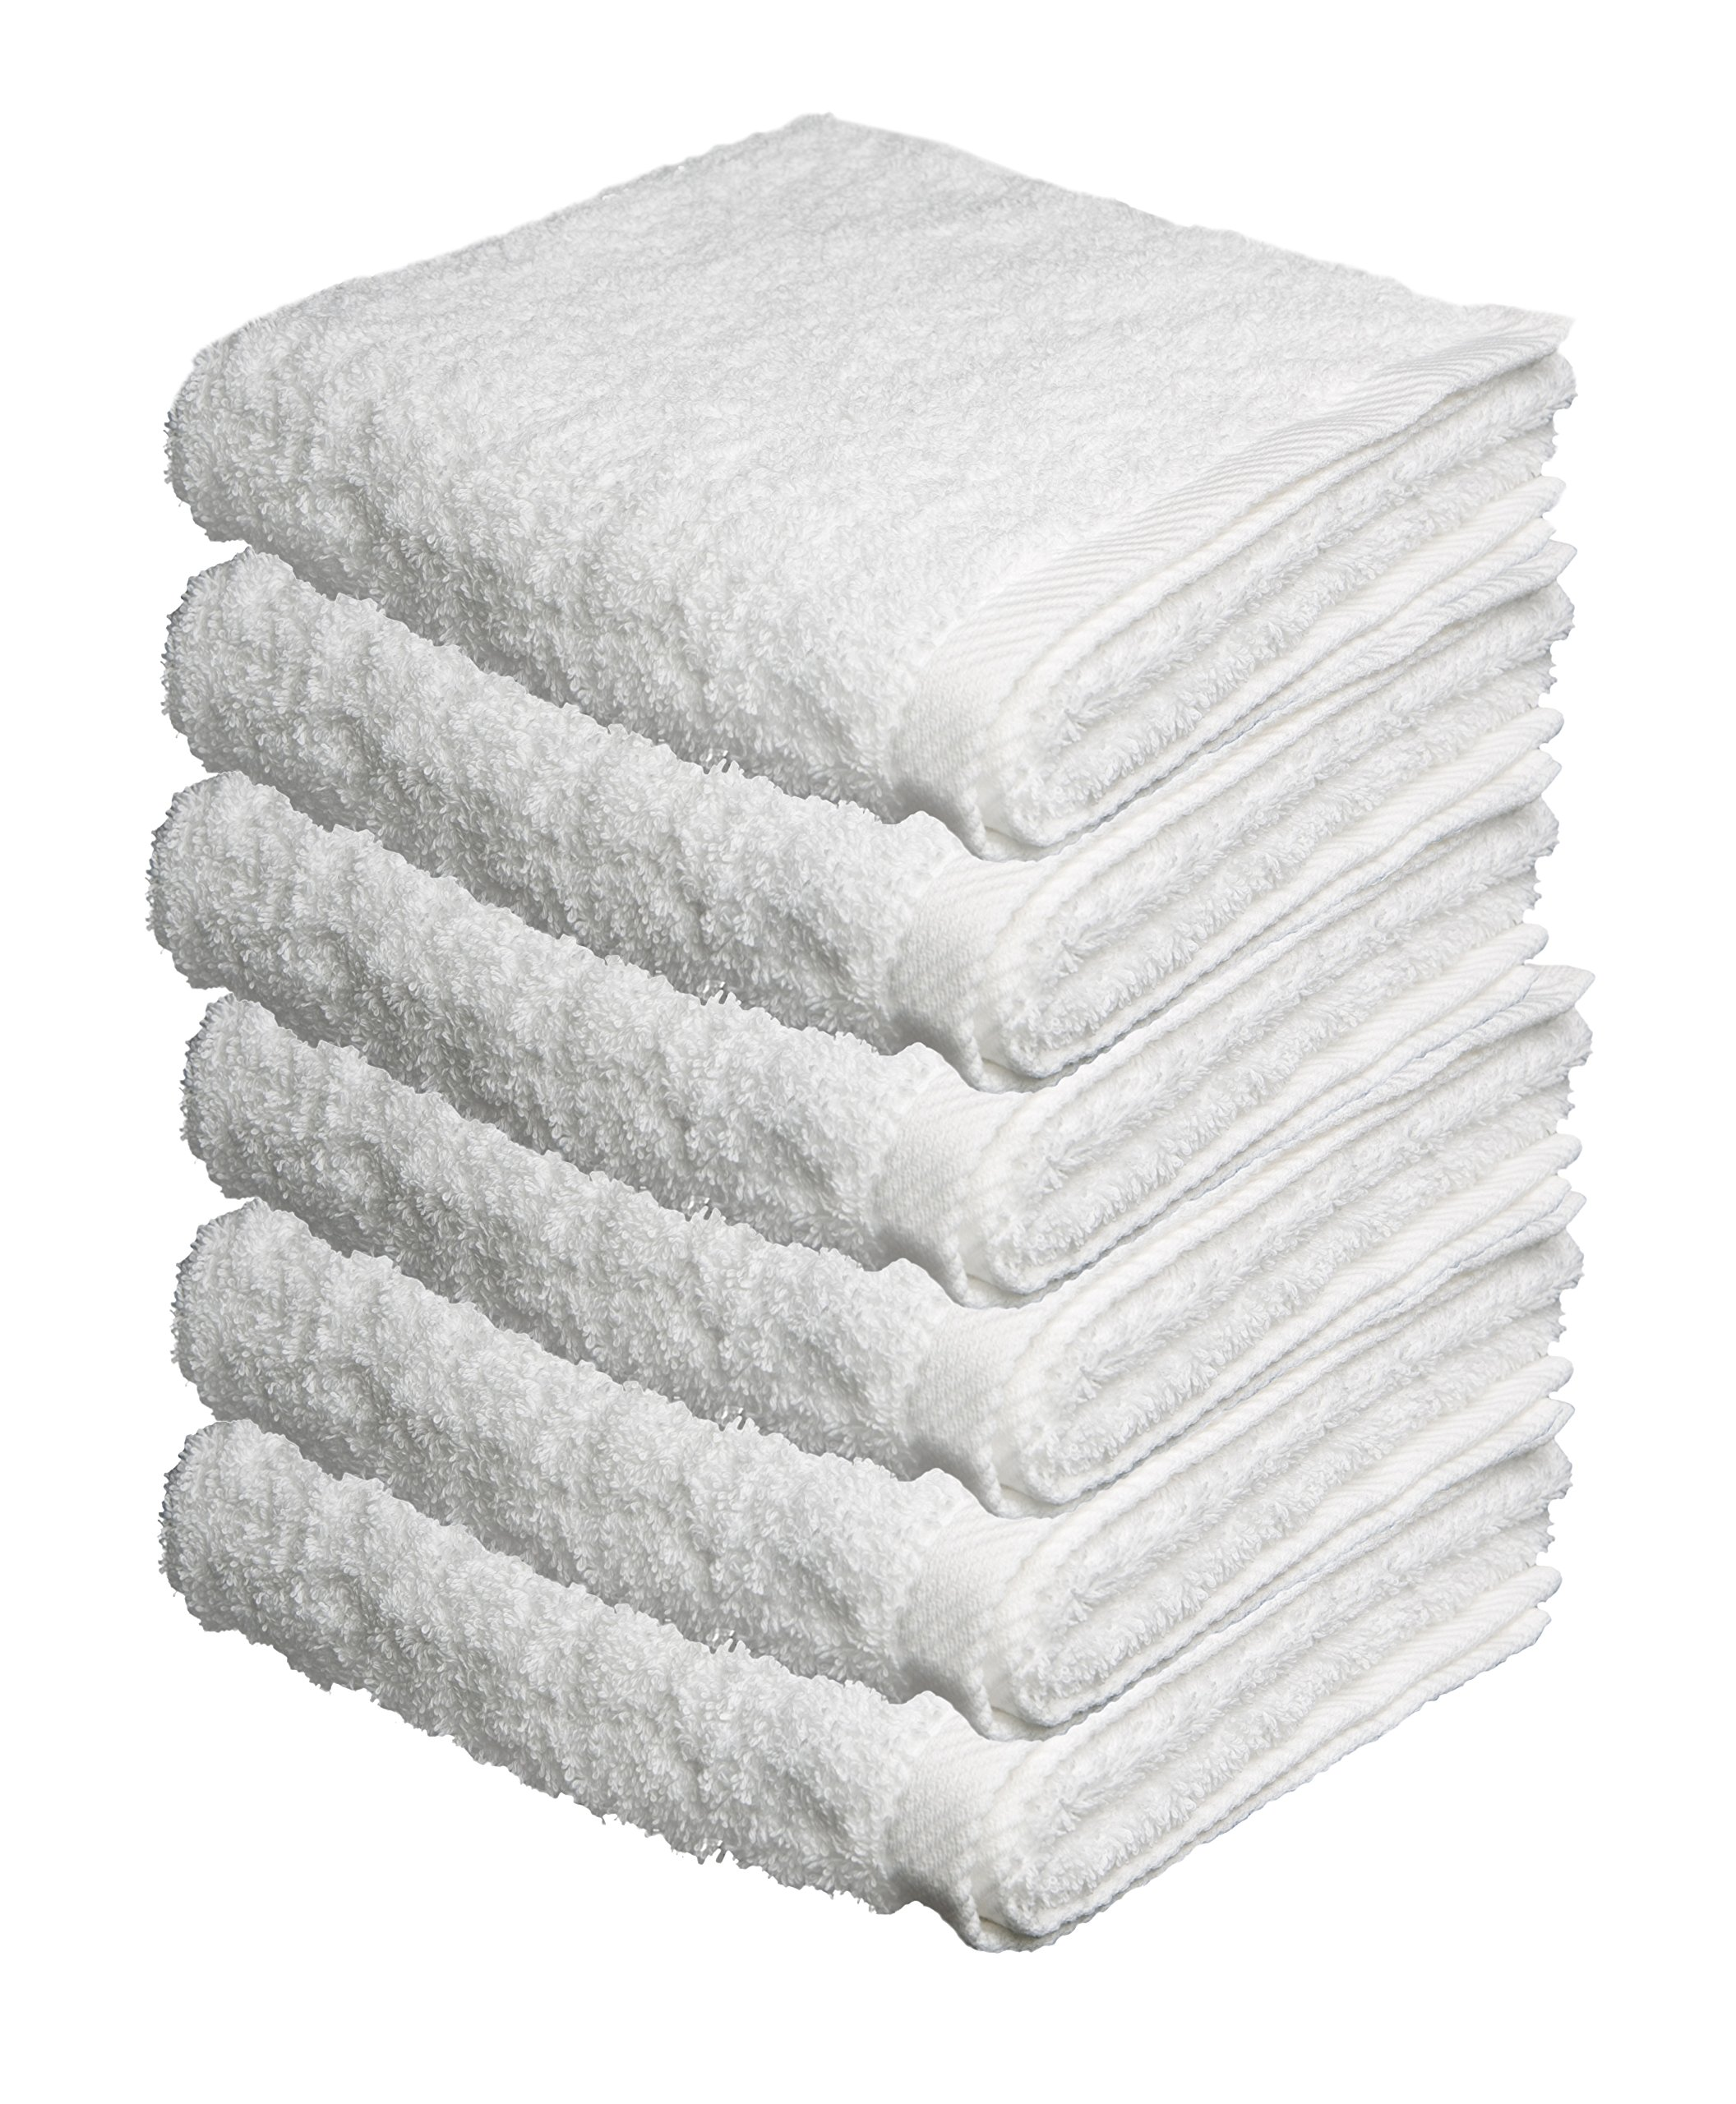 BUNDLE OF 6, 40''x80'', Turkish Spa Bath Sheet, 660 GSM. (WHITE) by ThirstyTM Towels OR Pamooq